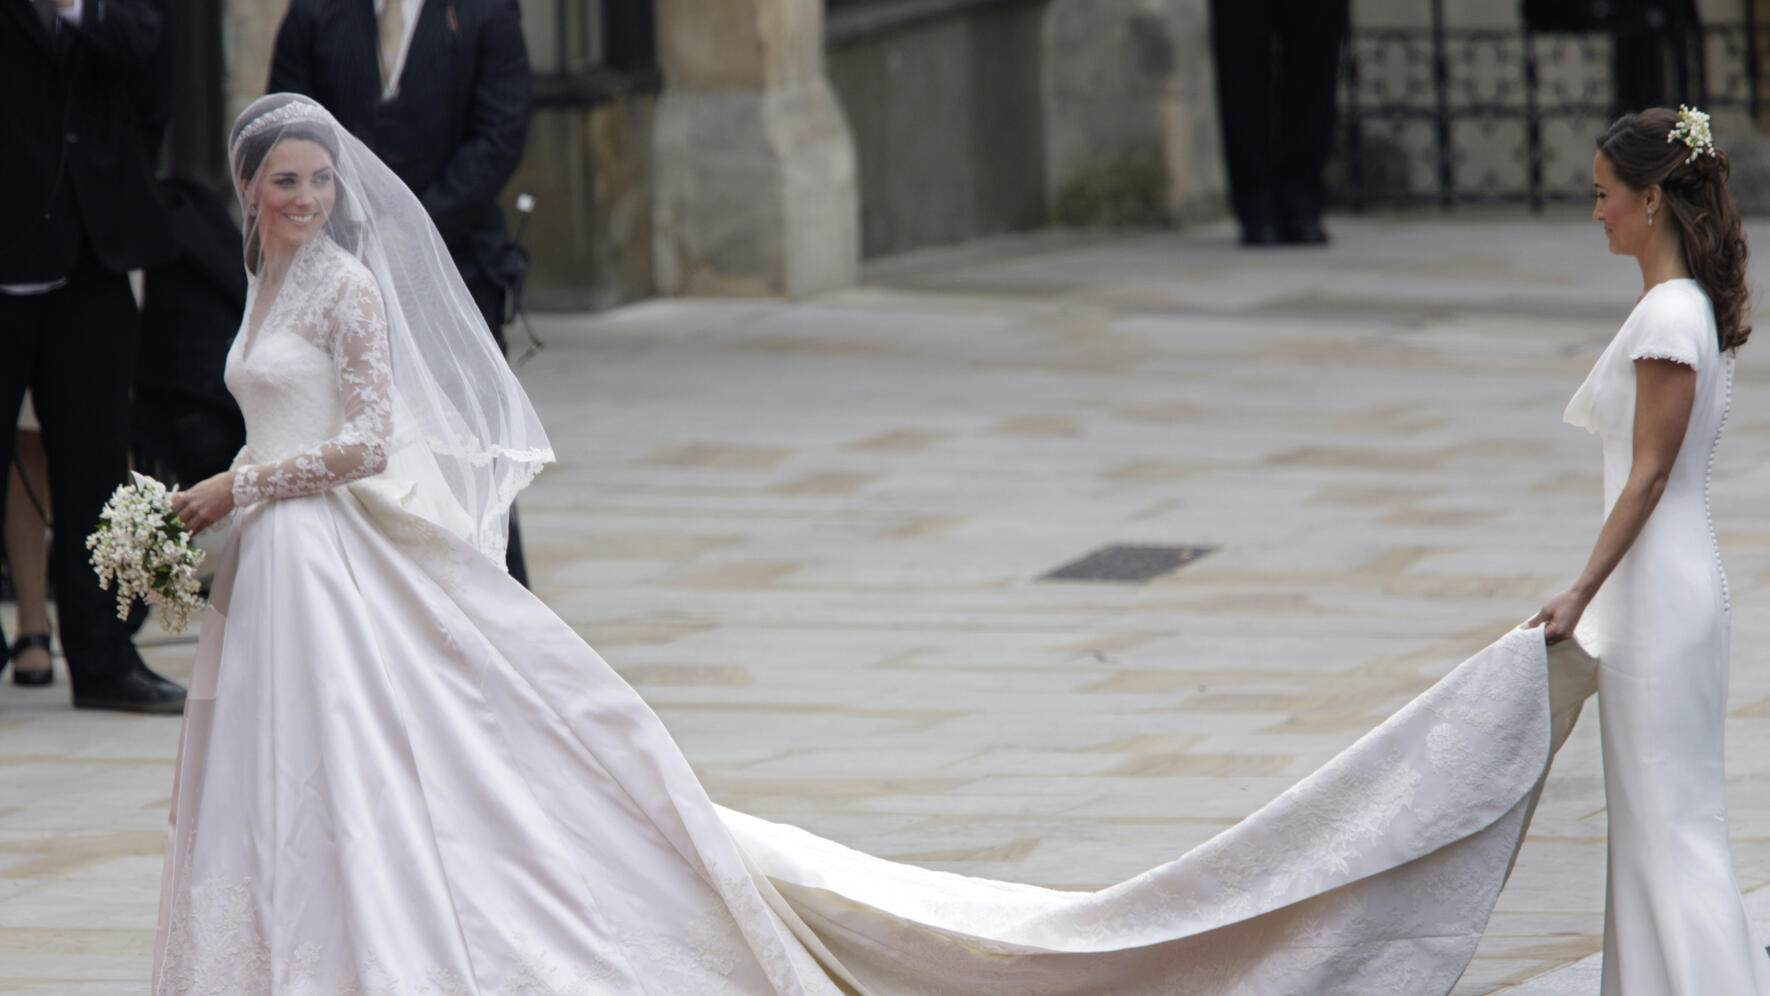 Kate Middleton arrives at Westminster Abbey for her royal wedding to Britain's Prince William in London. (Photo by Brooks Kraft LLC/Corbis via Getty Images)